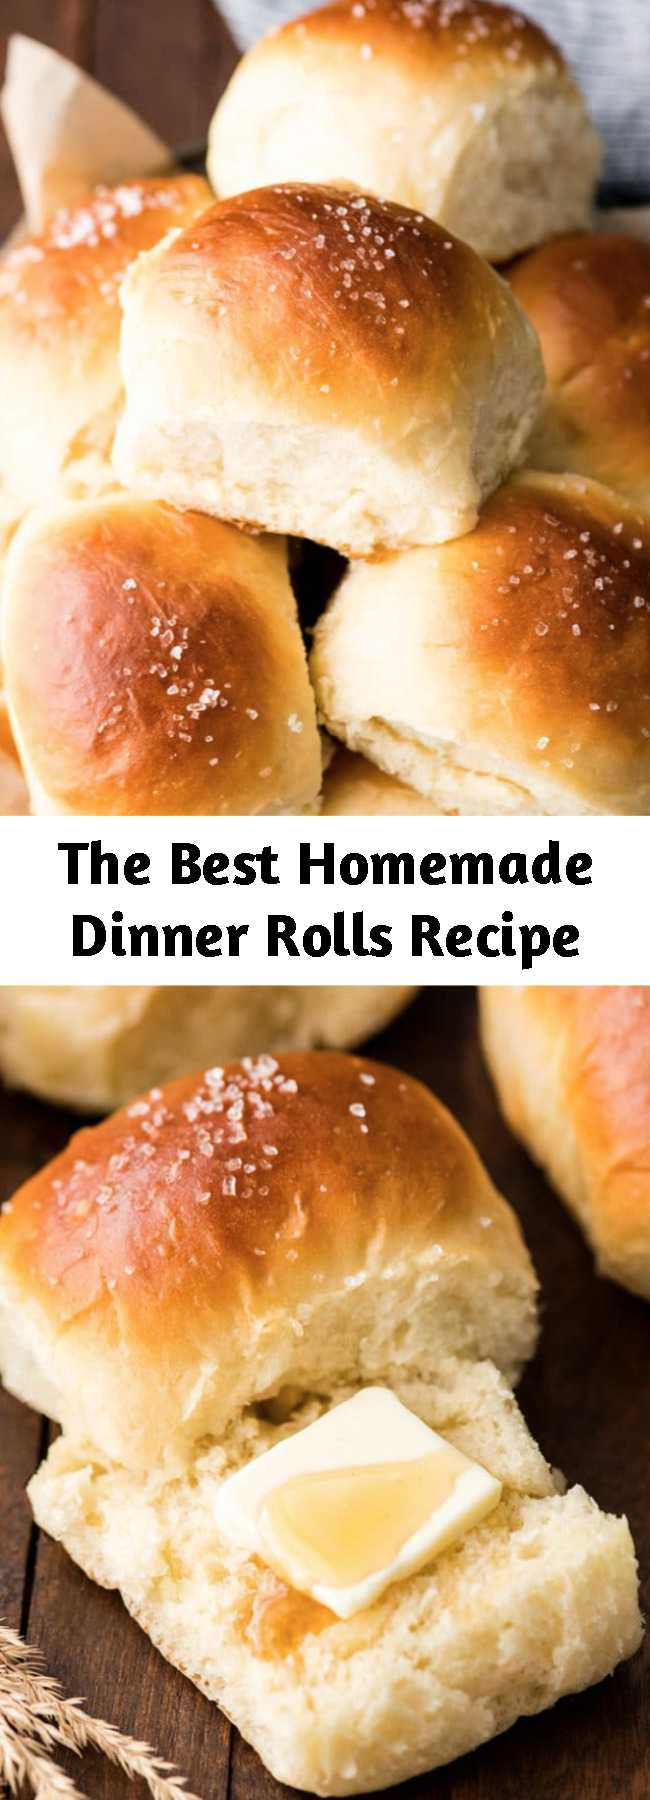 The Best Homemade Dinner Rolls Recipe - This Best Homemade Dinner Rolls recipe turns out perfectly every time. These easy, soft & fluffy dinner rolls are, slightly sweet and salty, irresistibly buttery and made from scratch!! #fromscratch #dinnerrolls #bestdinnerrolls #fluffydinnerrolls #softdinnerrolls